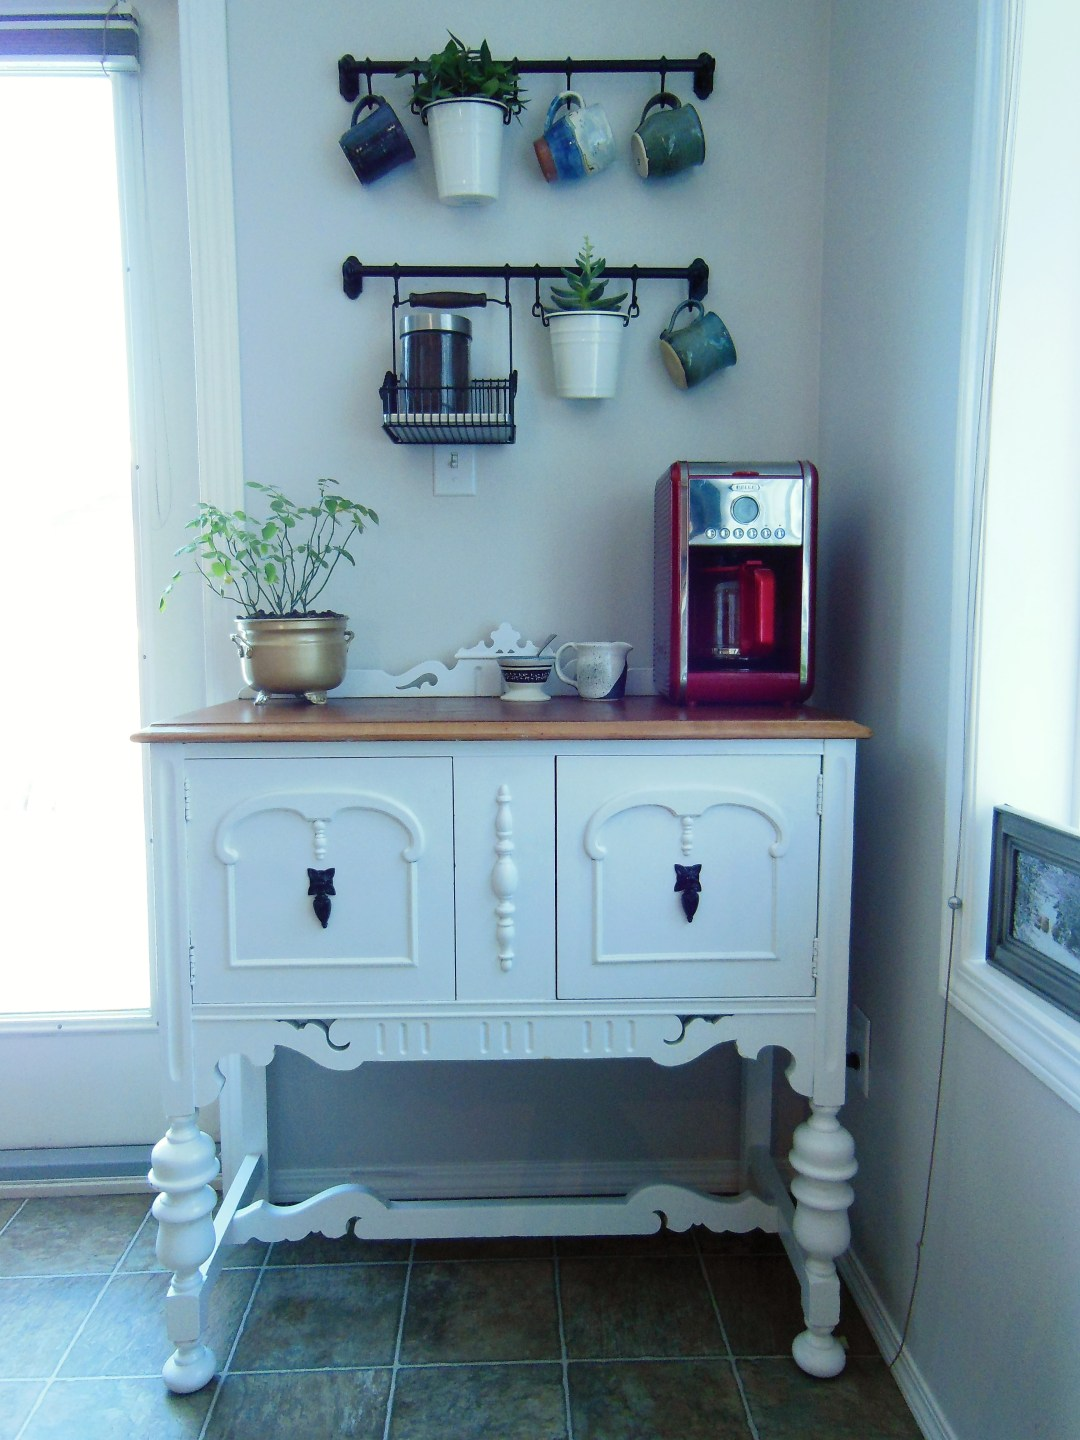 The Coffee bar - the finished product